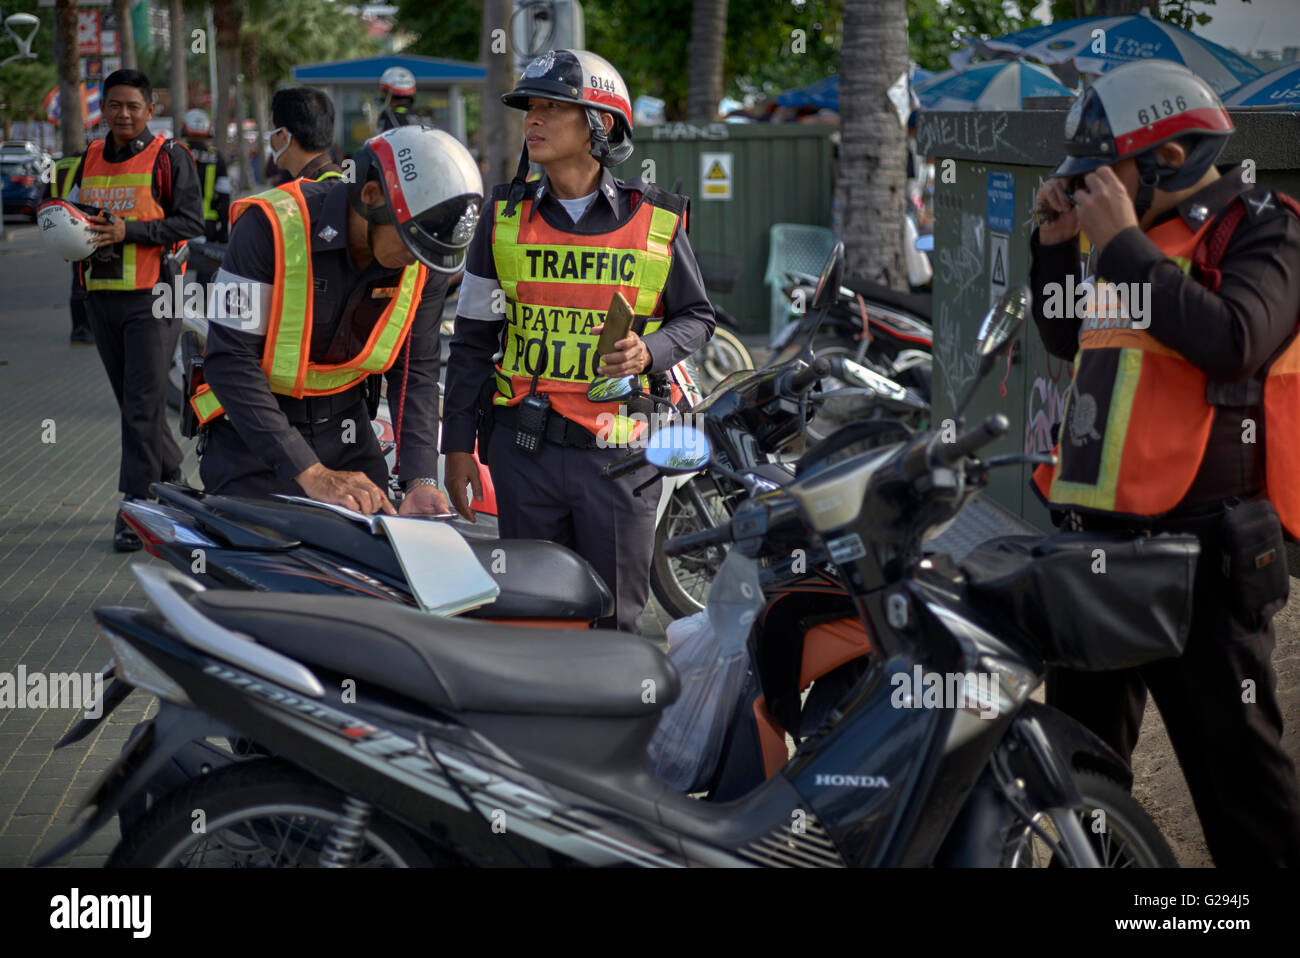 Thai traffic police. Thailand S. E. Asia - Stock Image